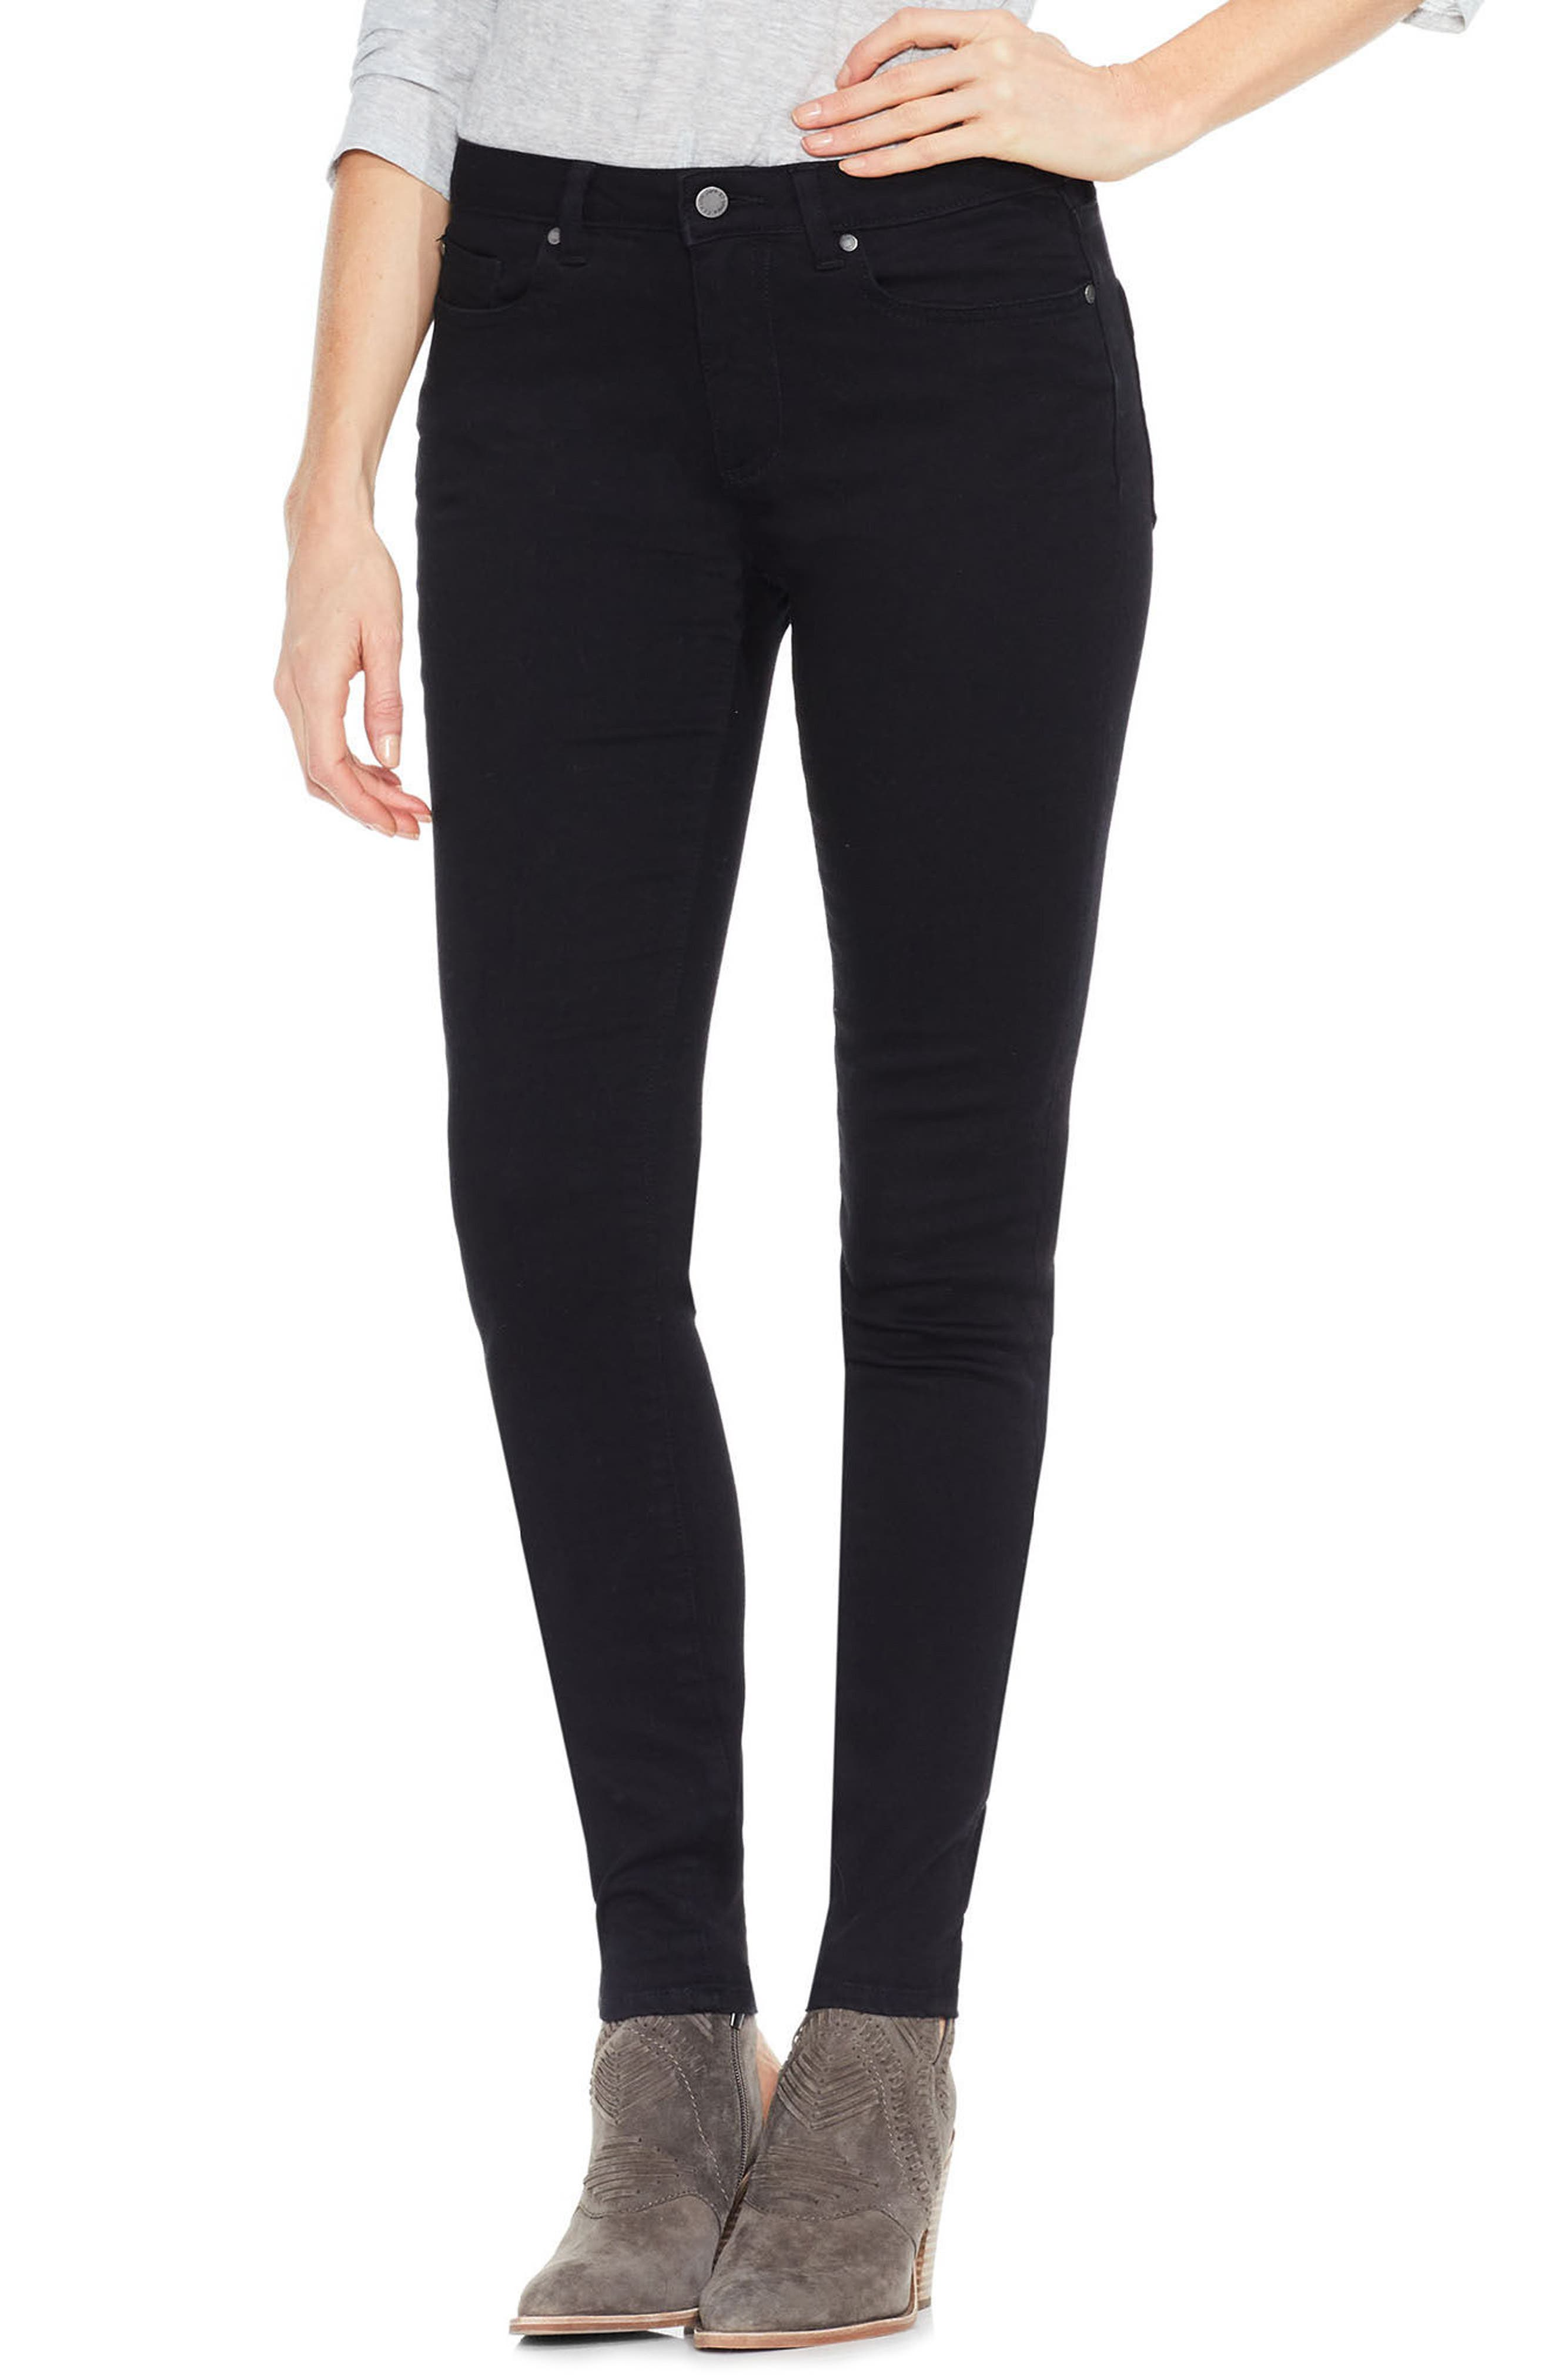 Alternate Image 1 Selected - Vince Camuto Stretch Skinny Jeans